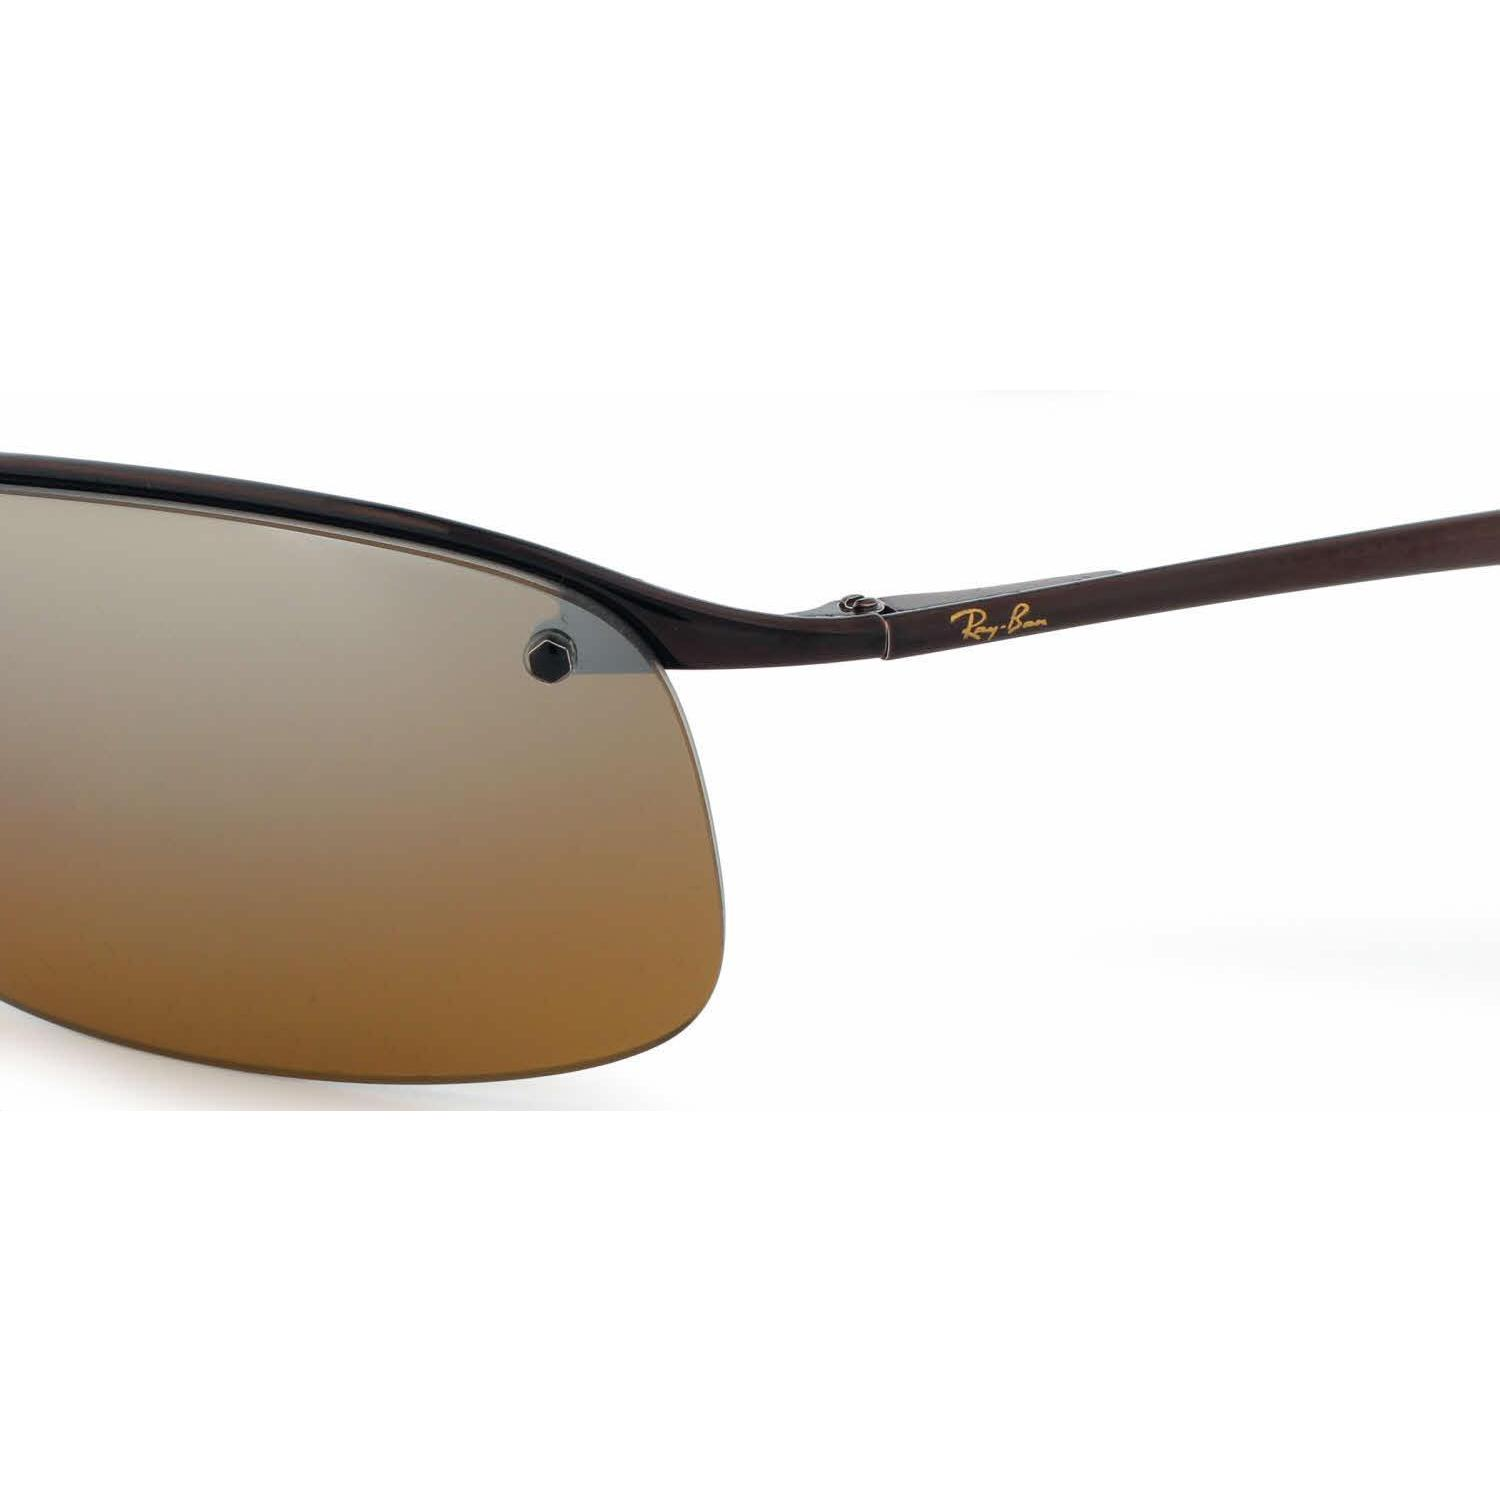 b5ef26a2b28f76 Shop Ray Ban Mens RB3183 014 84 Brown Metal Rectangle Sunglasses - Free  Shipping Today - Overstock.com - 13467448